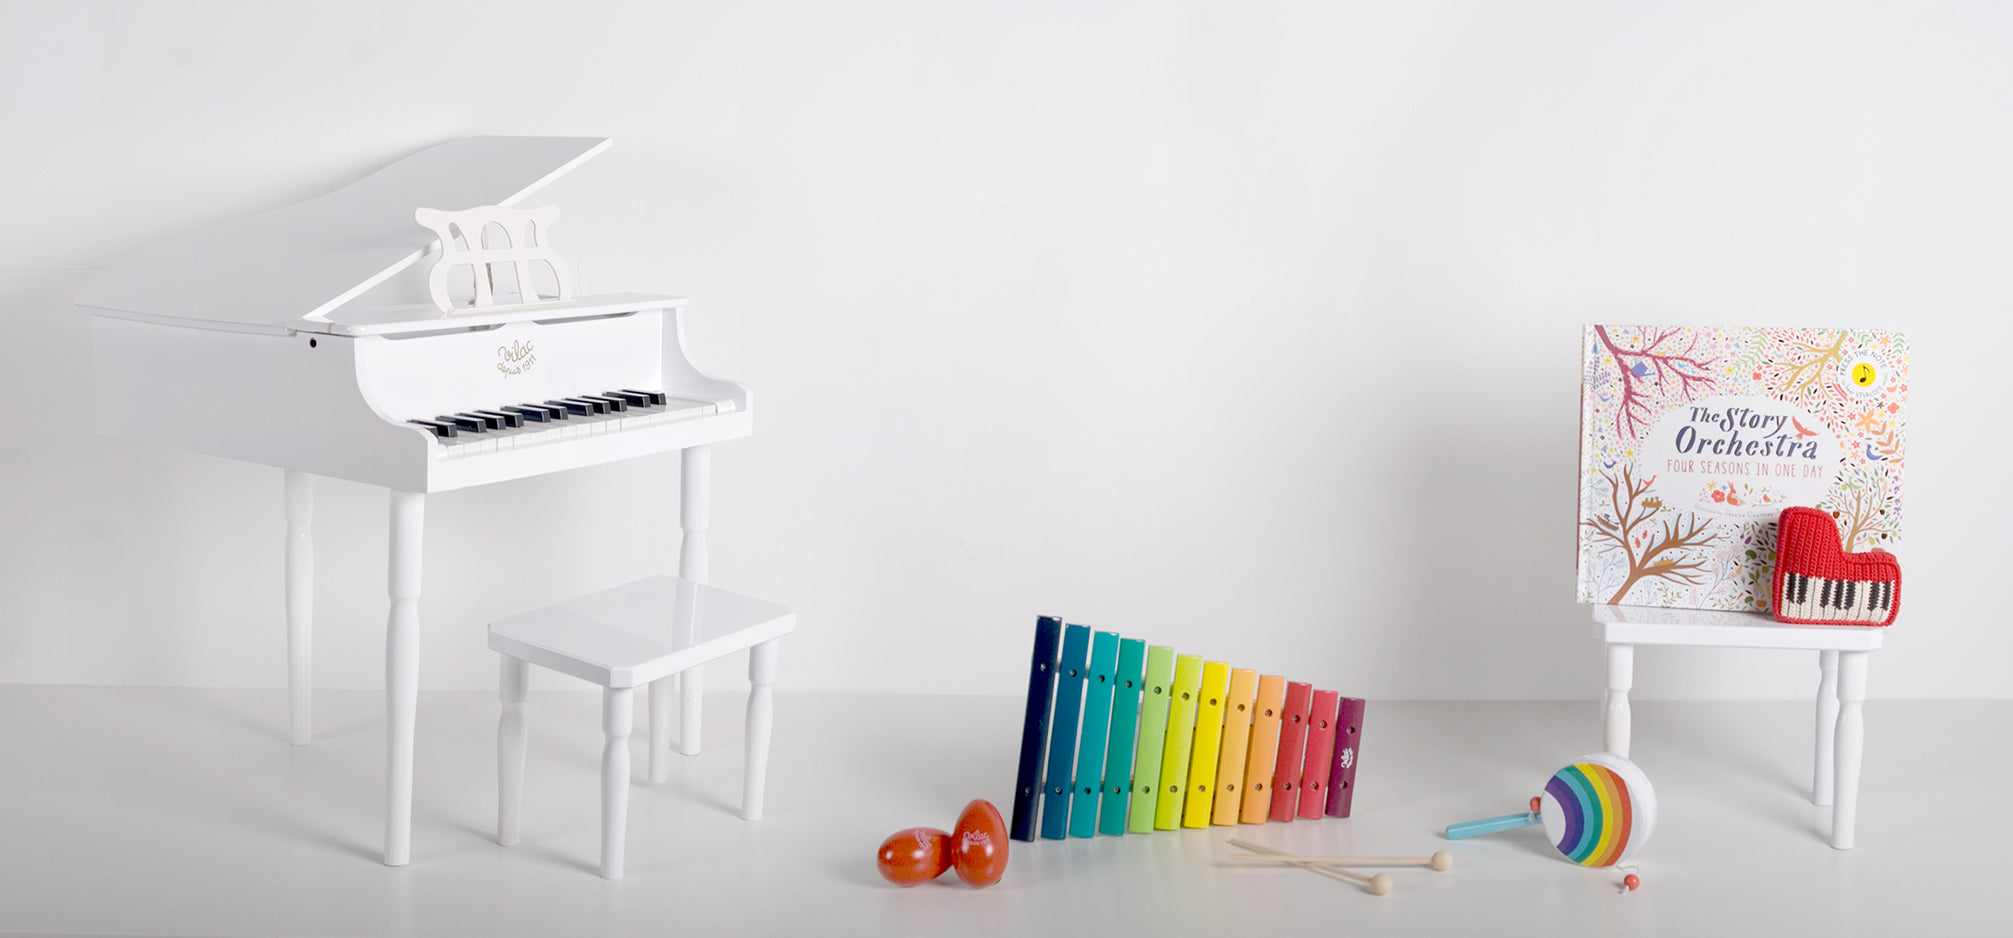 Toy musical instruments.